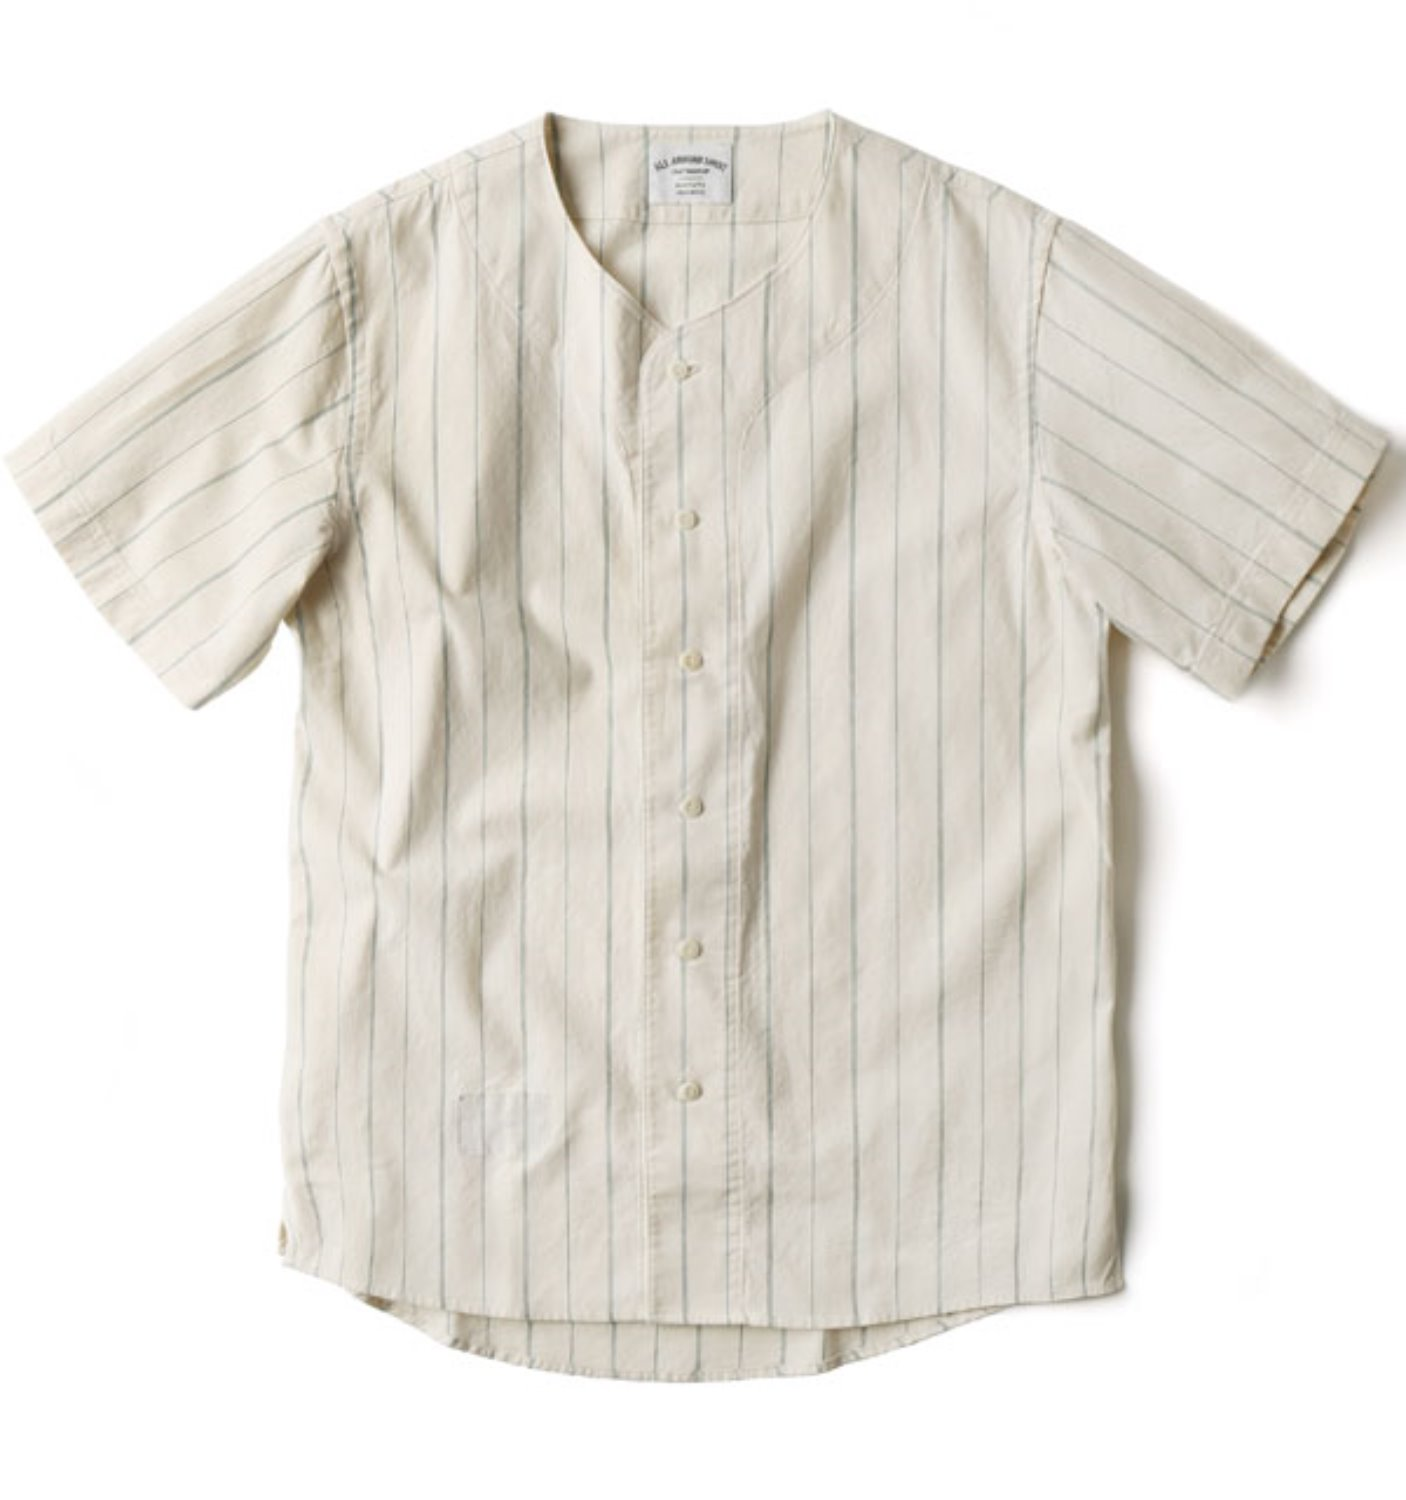 SC-BS01 Baseball Shirt GREEN (Sculp Exclusive)